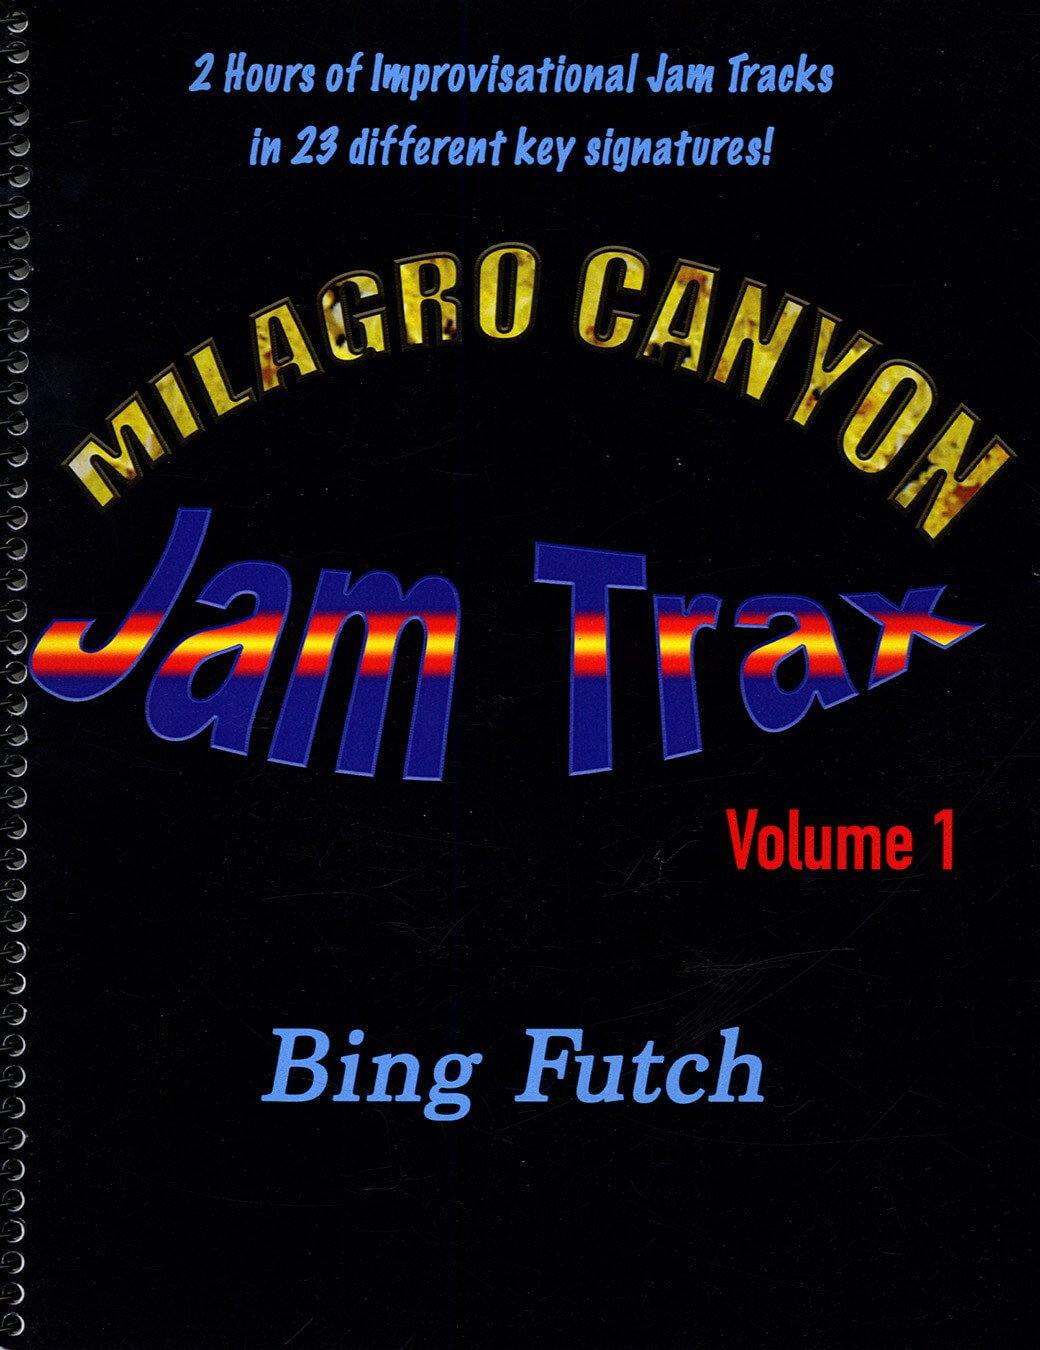 Bing Futch - Milagro Canyon Jam Trax, Volume 1